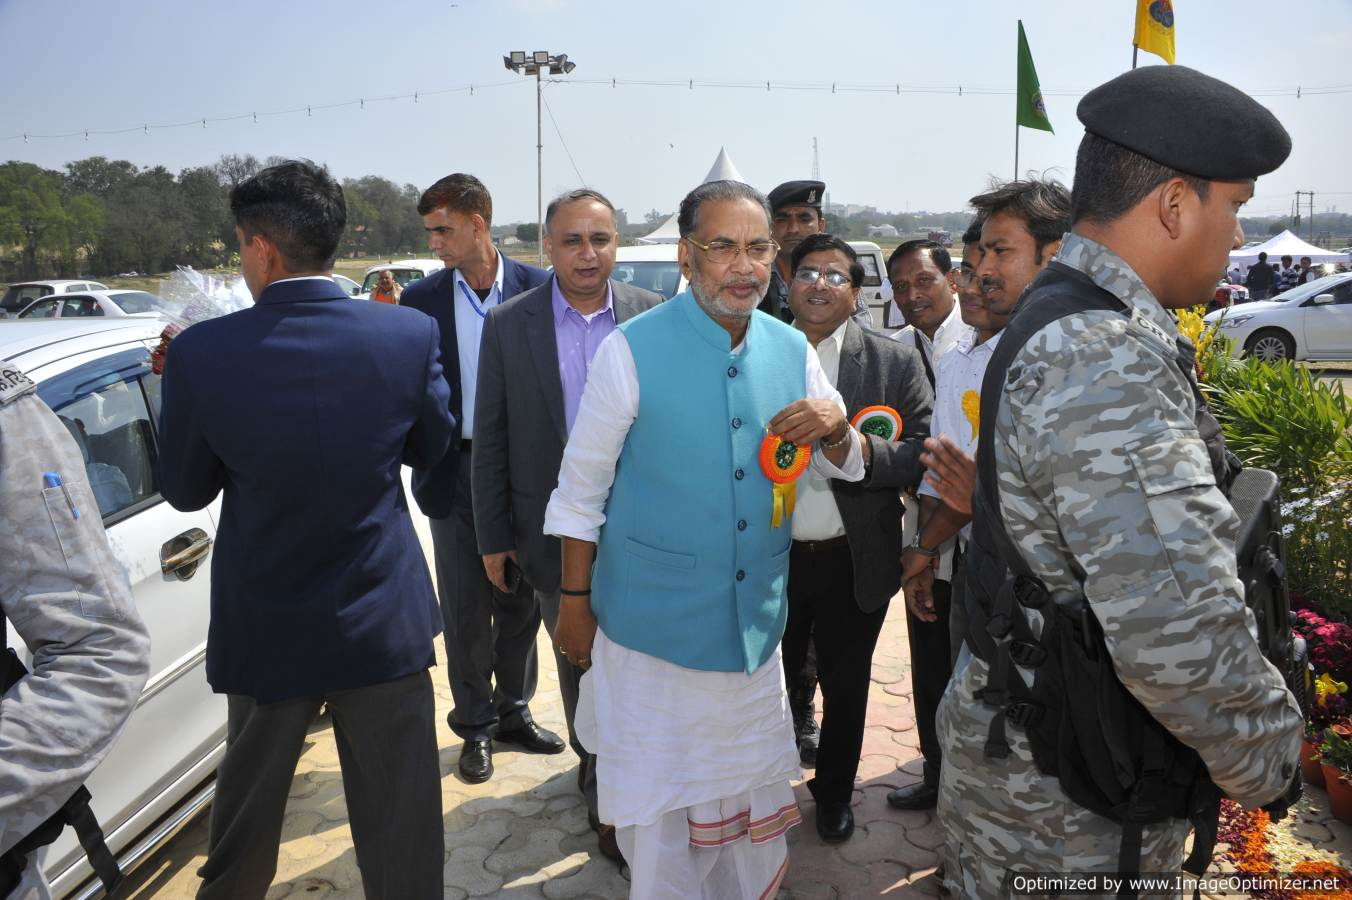 Shri radha Mohan Singh Ji, Hon'ble Union Minister of Agriculture and Farmers Welfare visited the Pusa Krishi Vigyan Mela 2019 on second day of the mela